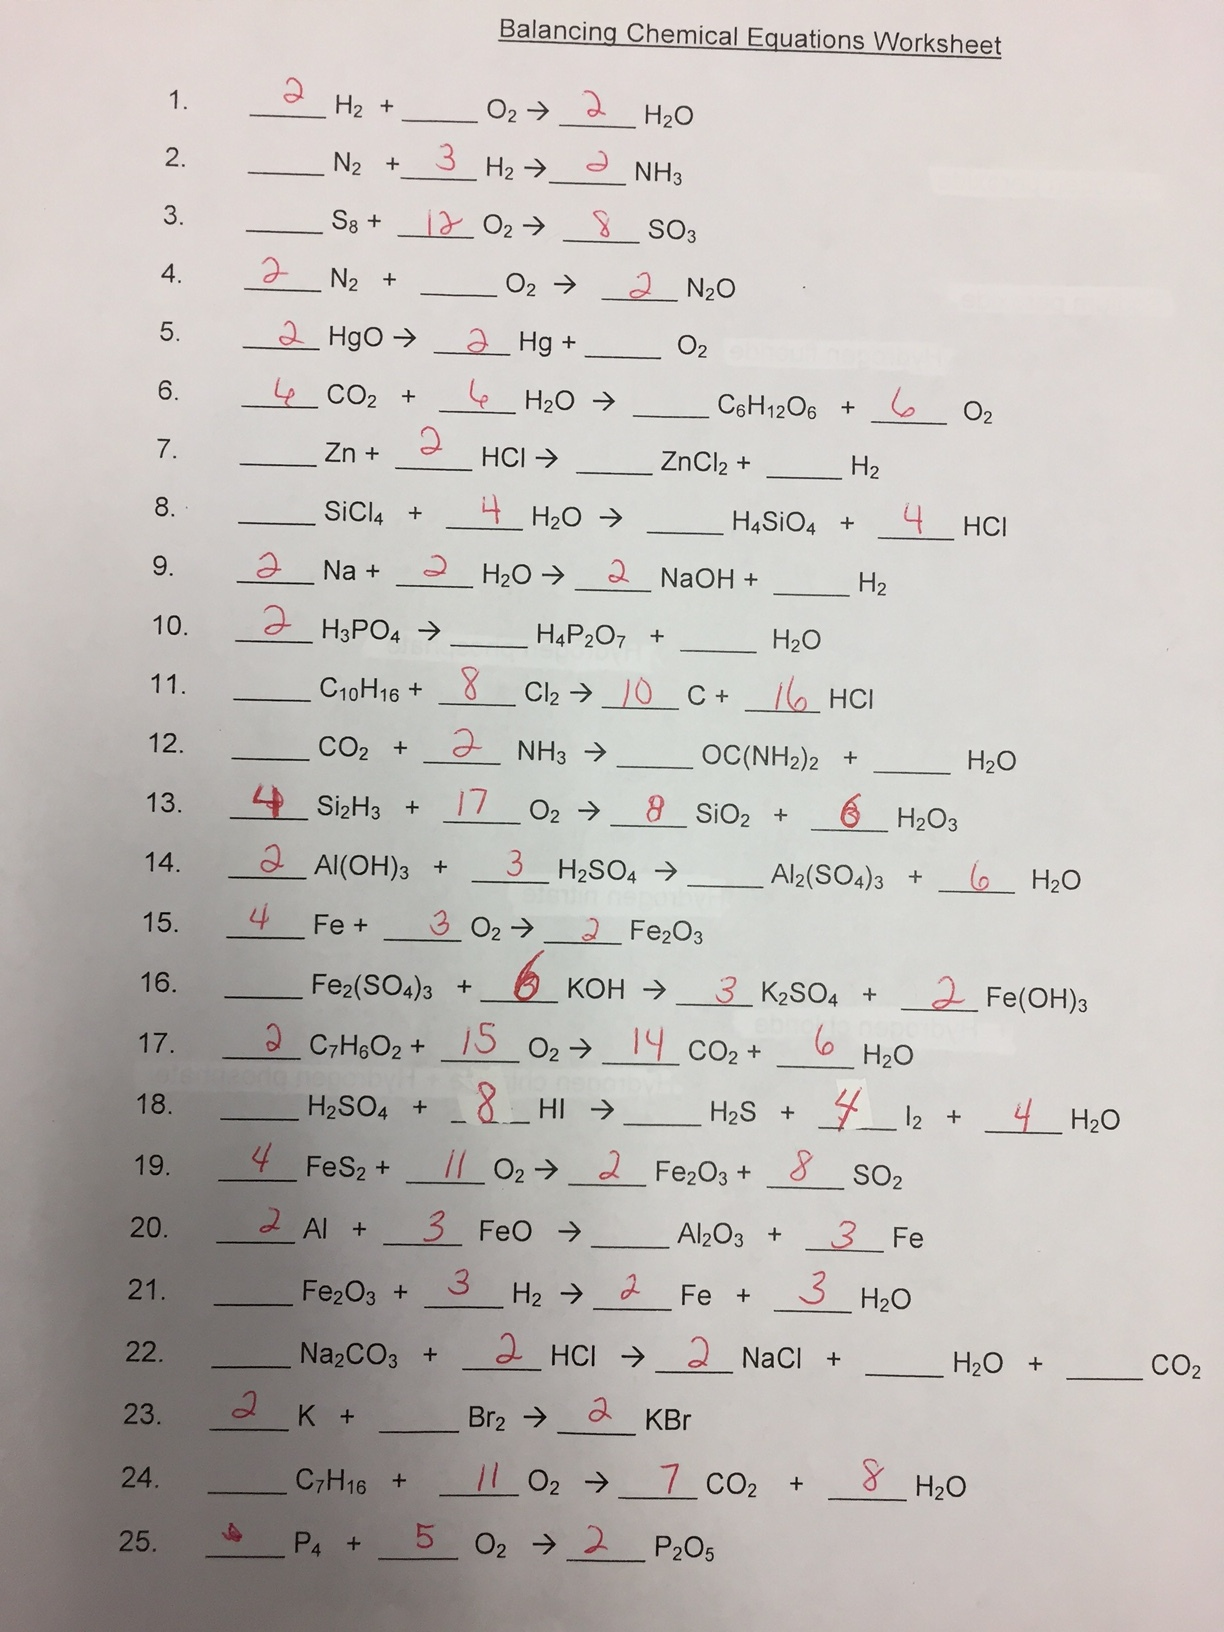 Worksheets Chapter 7 Worksheet 1 Balancing Chemical Equations balancing chemical equations chapter 7 worksheet 1 delibertad answers